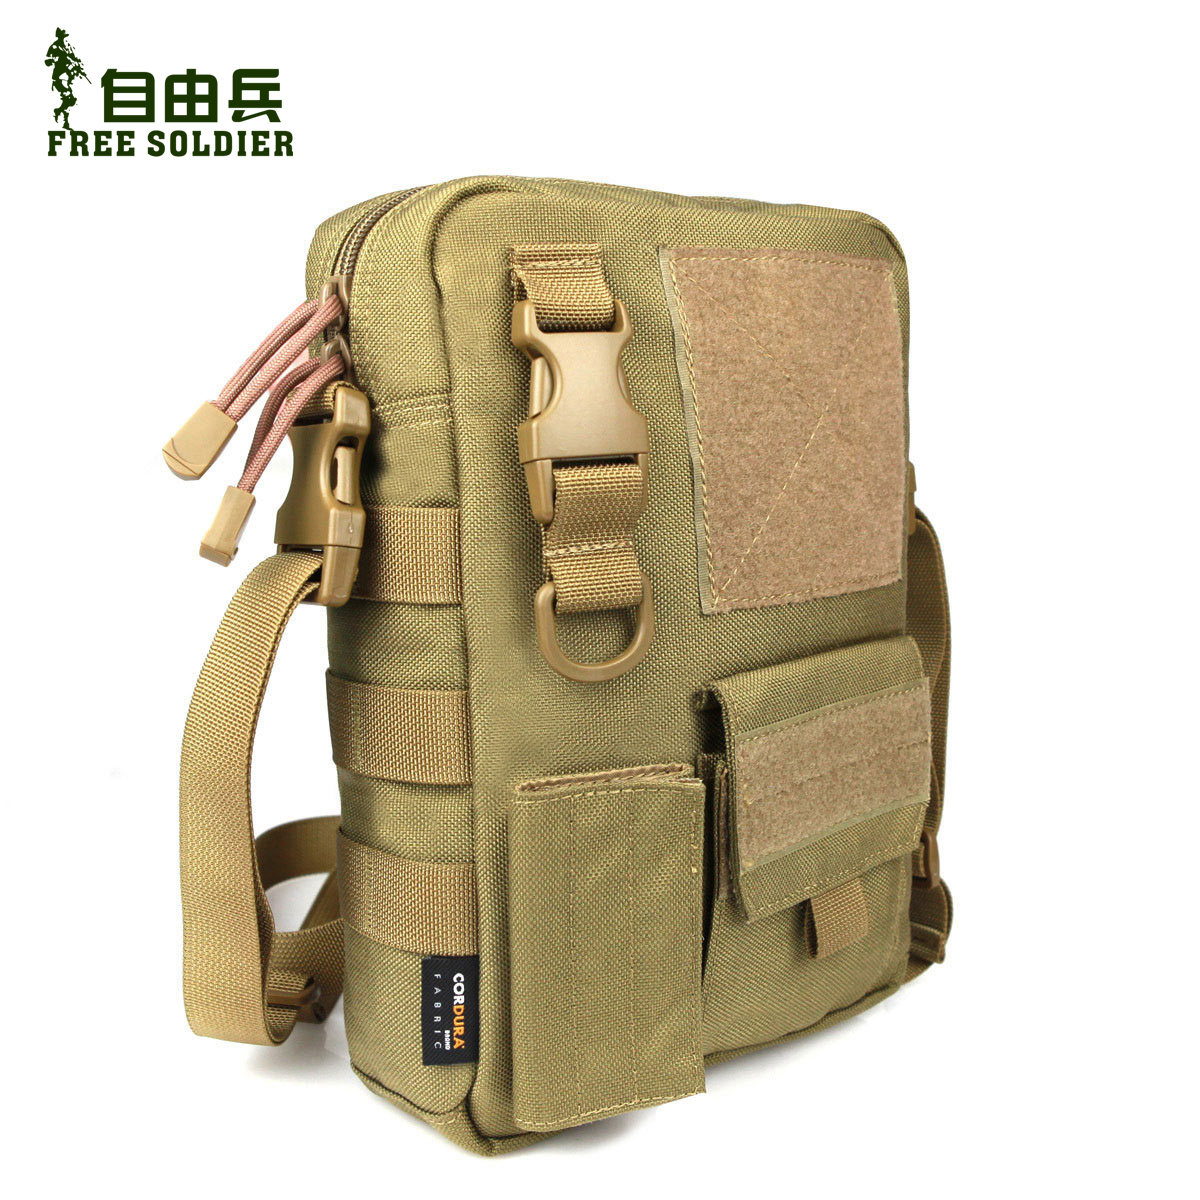 Freedom soldiers outdoor tactical shoulder bag messenger bag leisure bag tactical duty bag debris